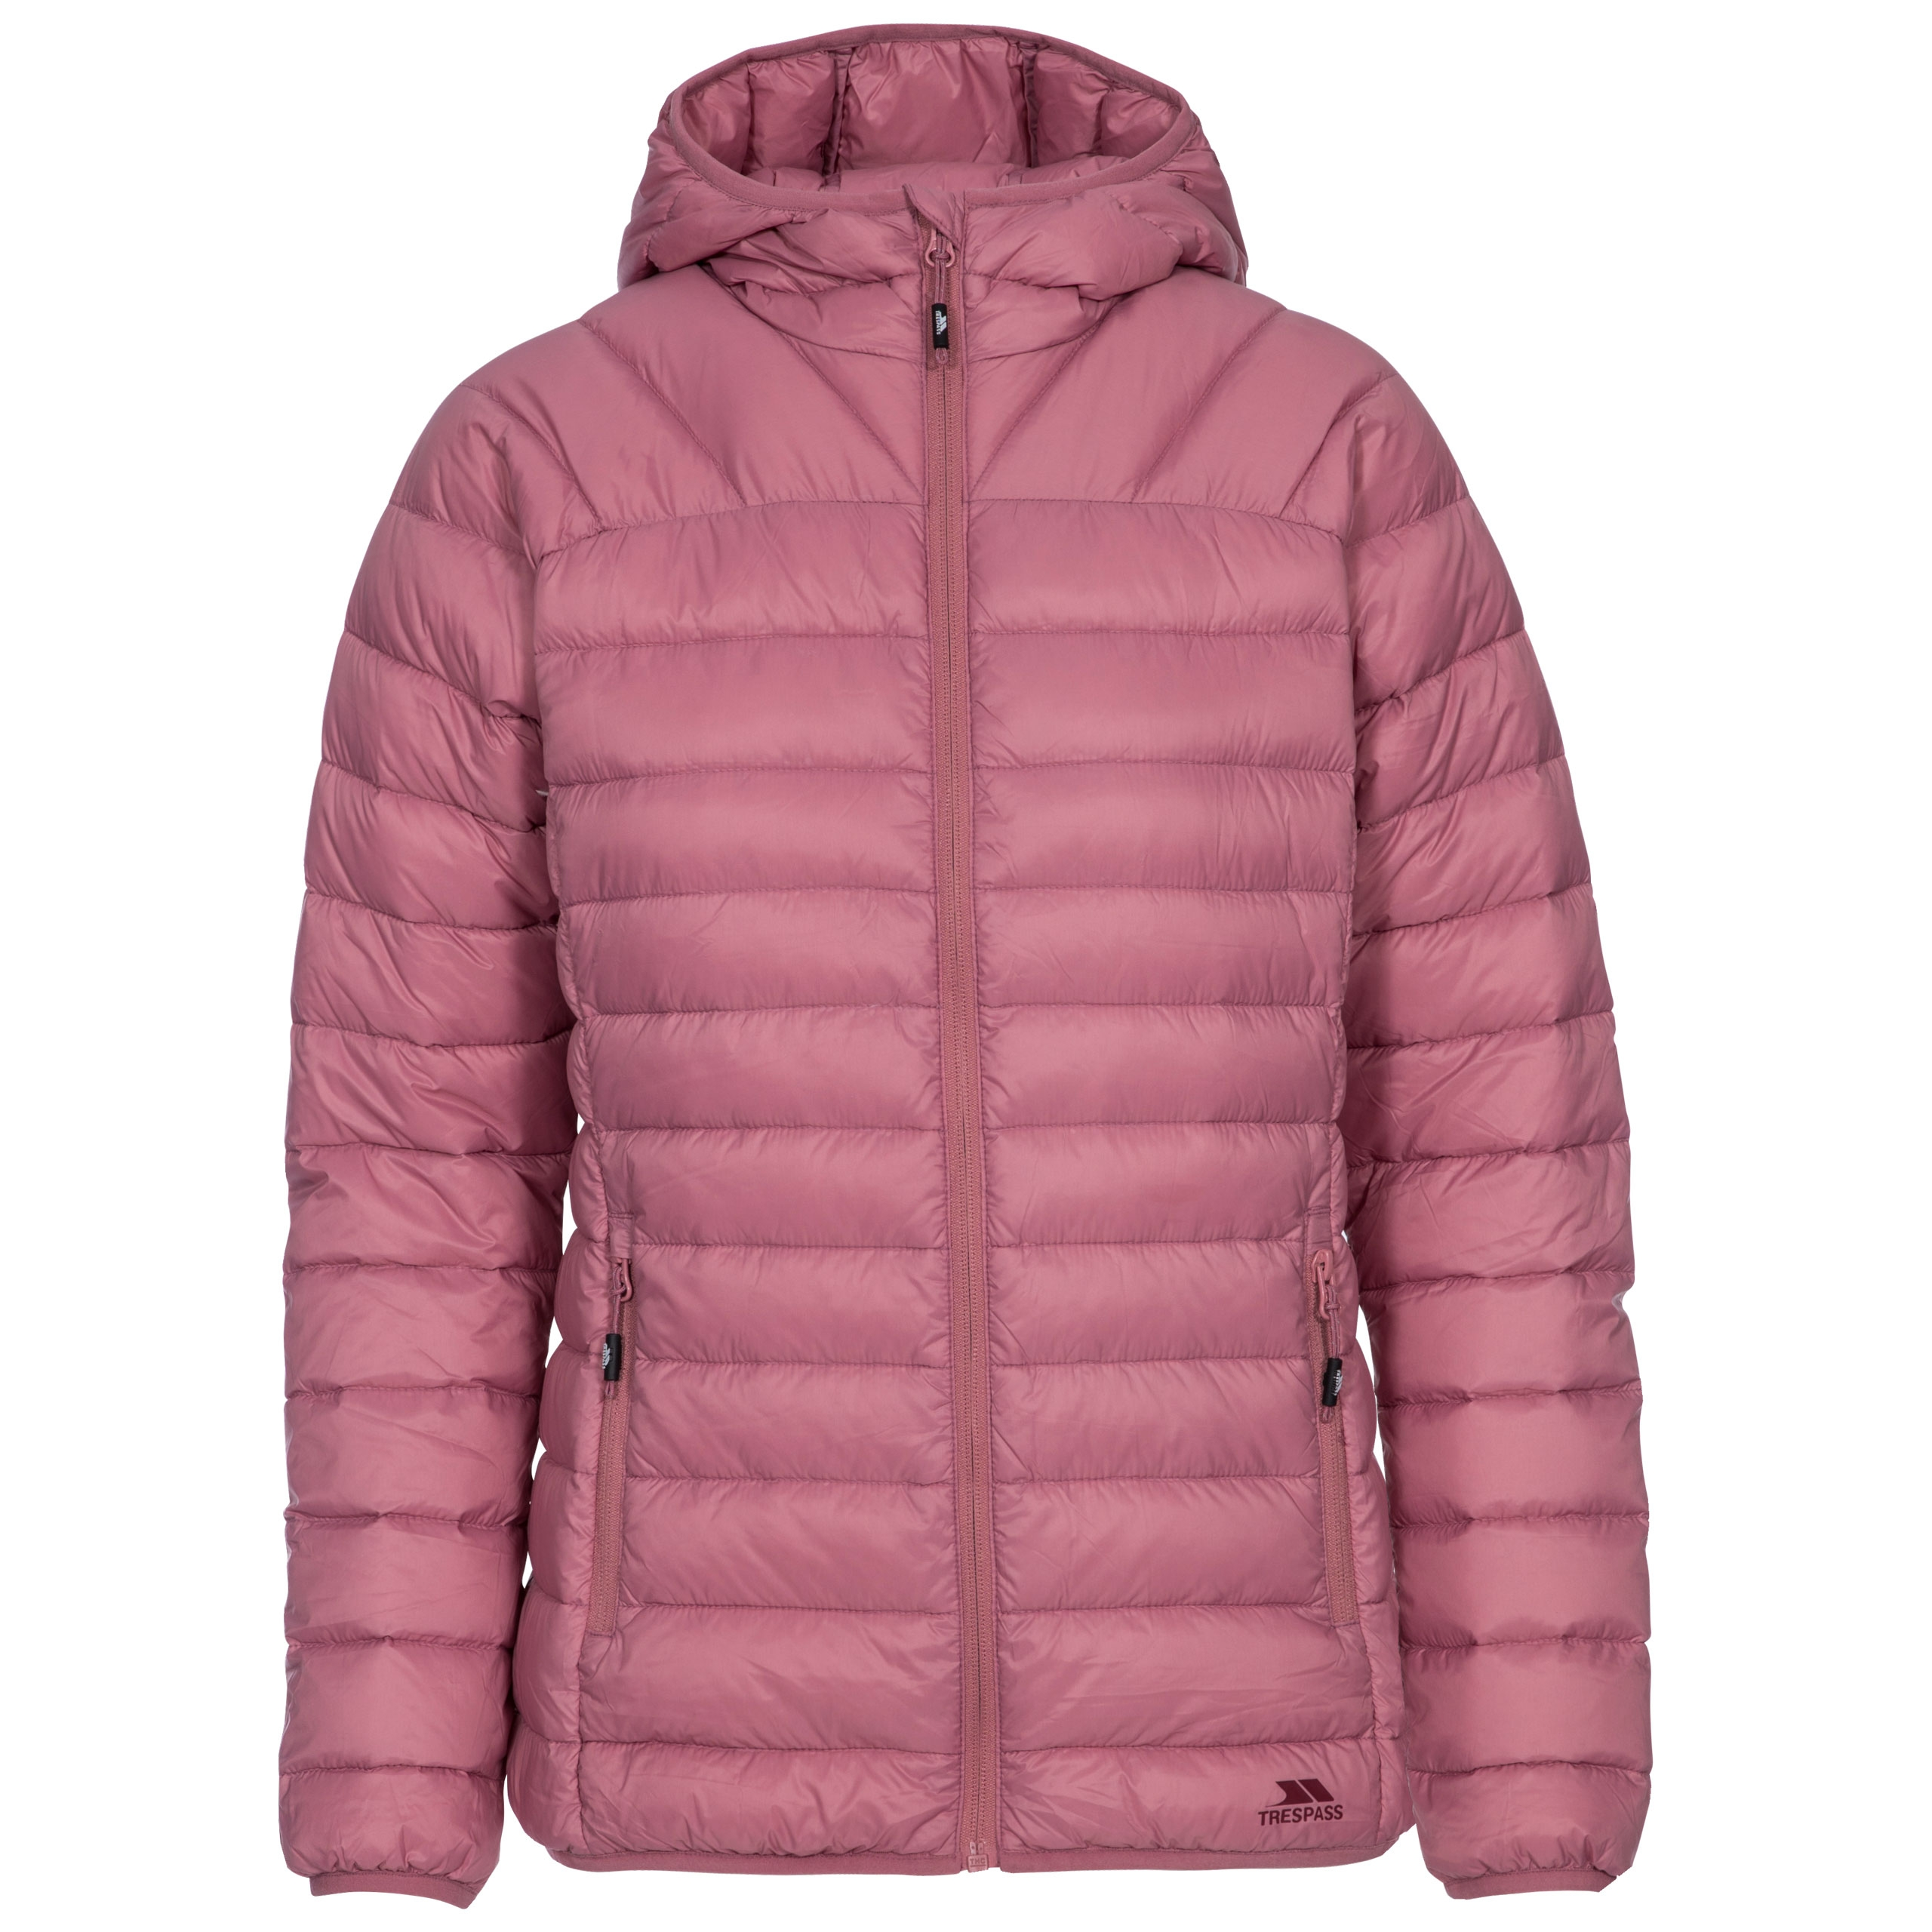 Trespass-Trisha-Womens-Lightweight-Down-Jacket-Puffer-Coat-with-Hood thumbnail 17